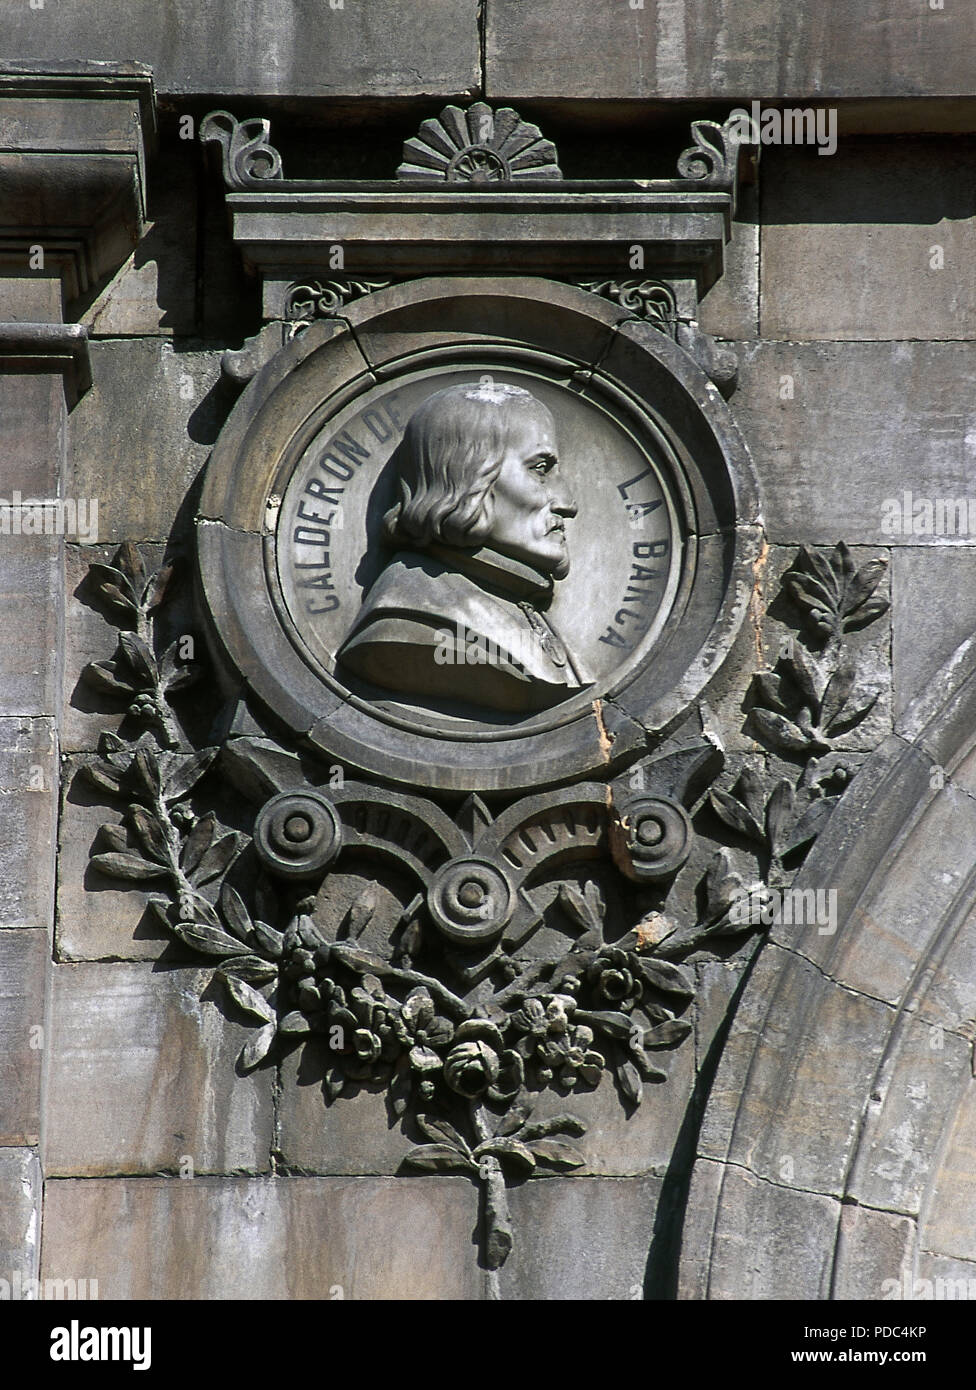 Pedro Calderon de la Barca (Madrid, 1600-1681). Spanish poet, dramatist and writer of the Spanish Golden Age. Relief on a medallion. Facade of the National Library, detail. Madrid, Spain. - Stock Image